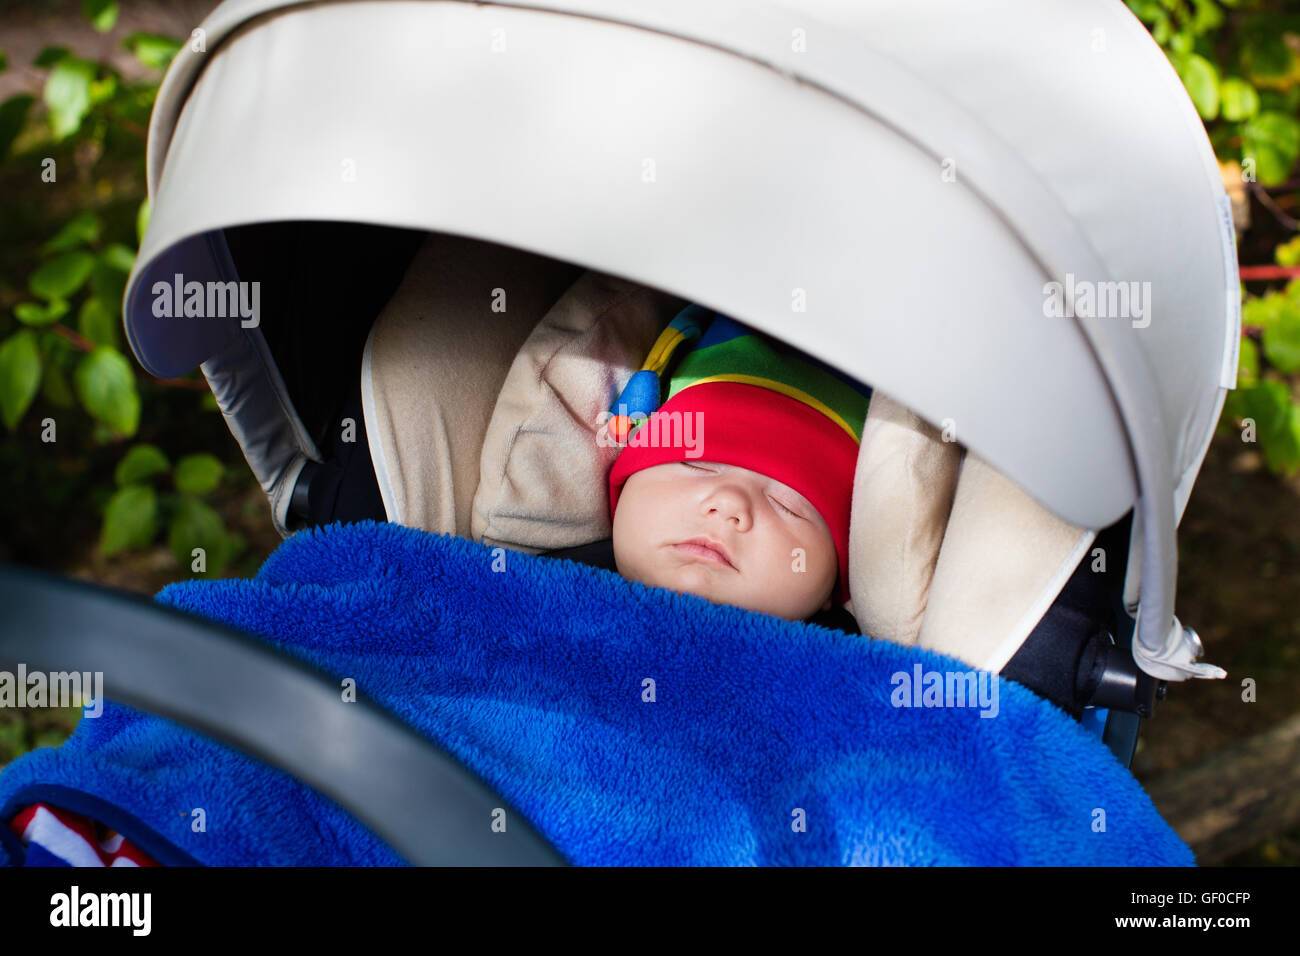 sleeping toddler automobile stockfotos sleeping toddler automobile bilder alamy. Black Bedroom Furniture Sets. Home Design Ideas